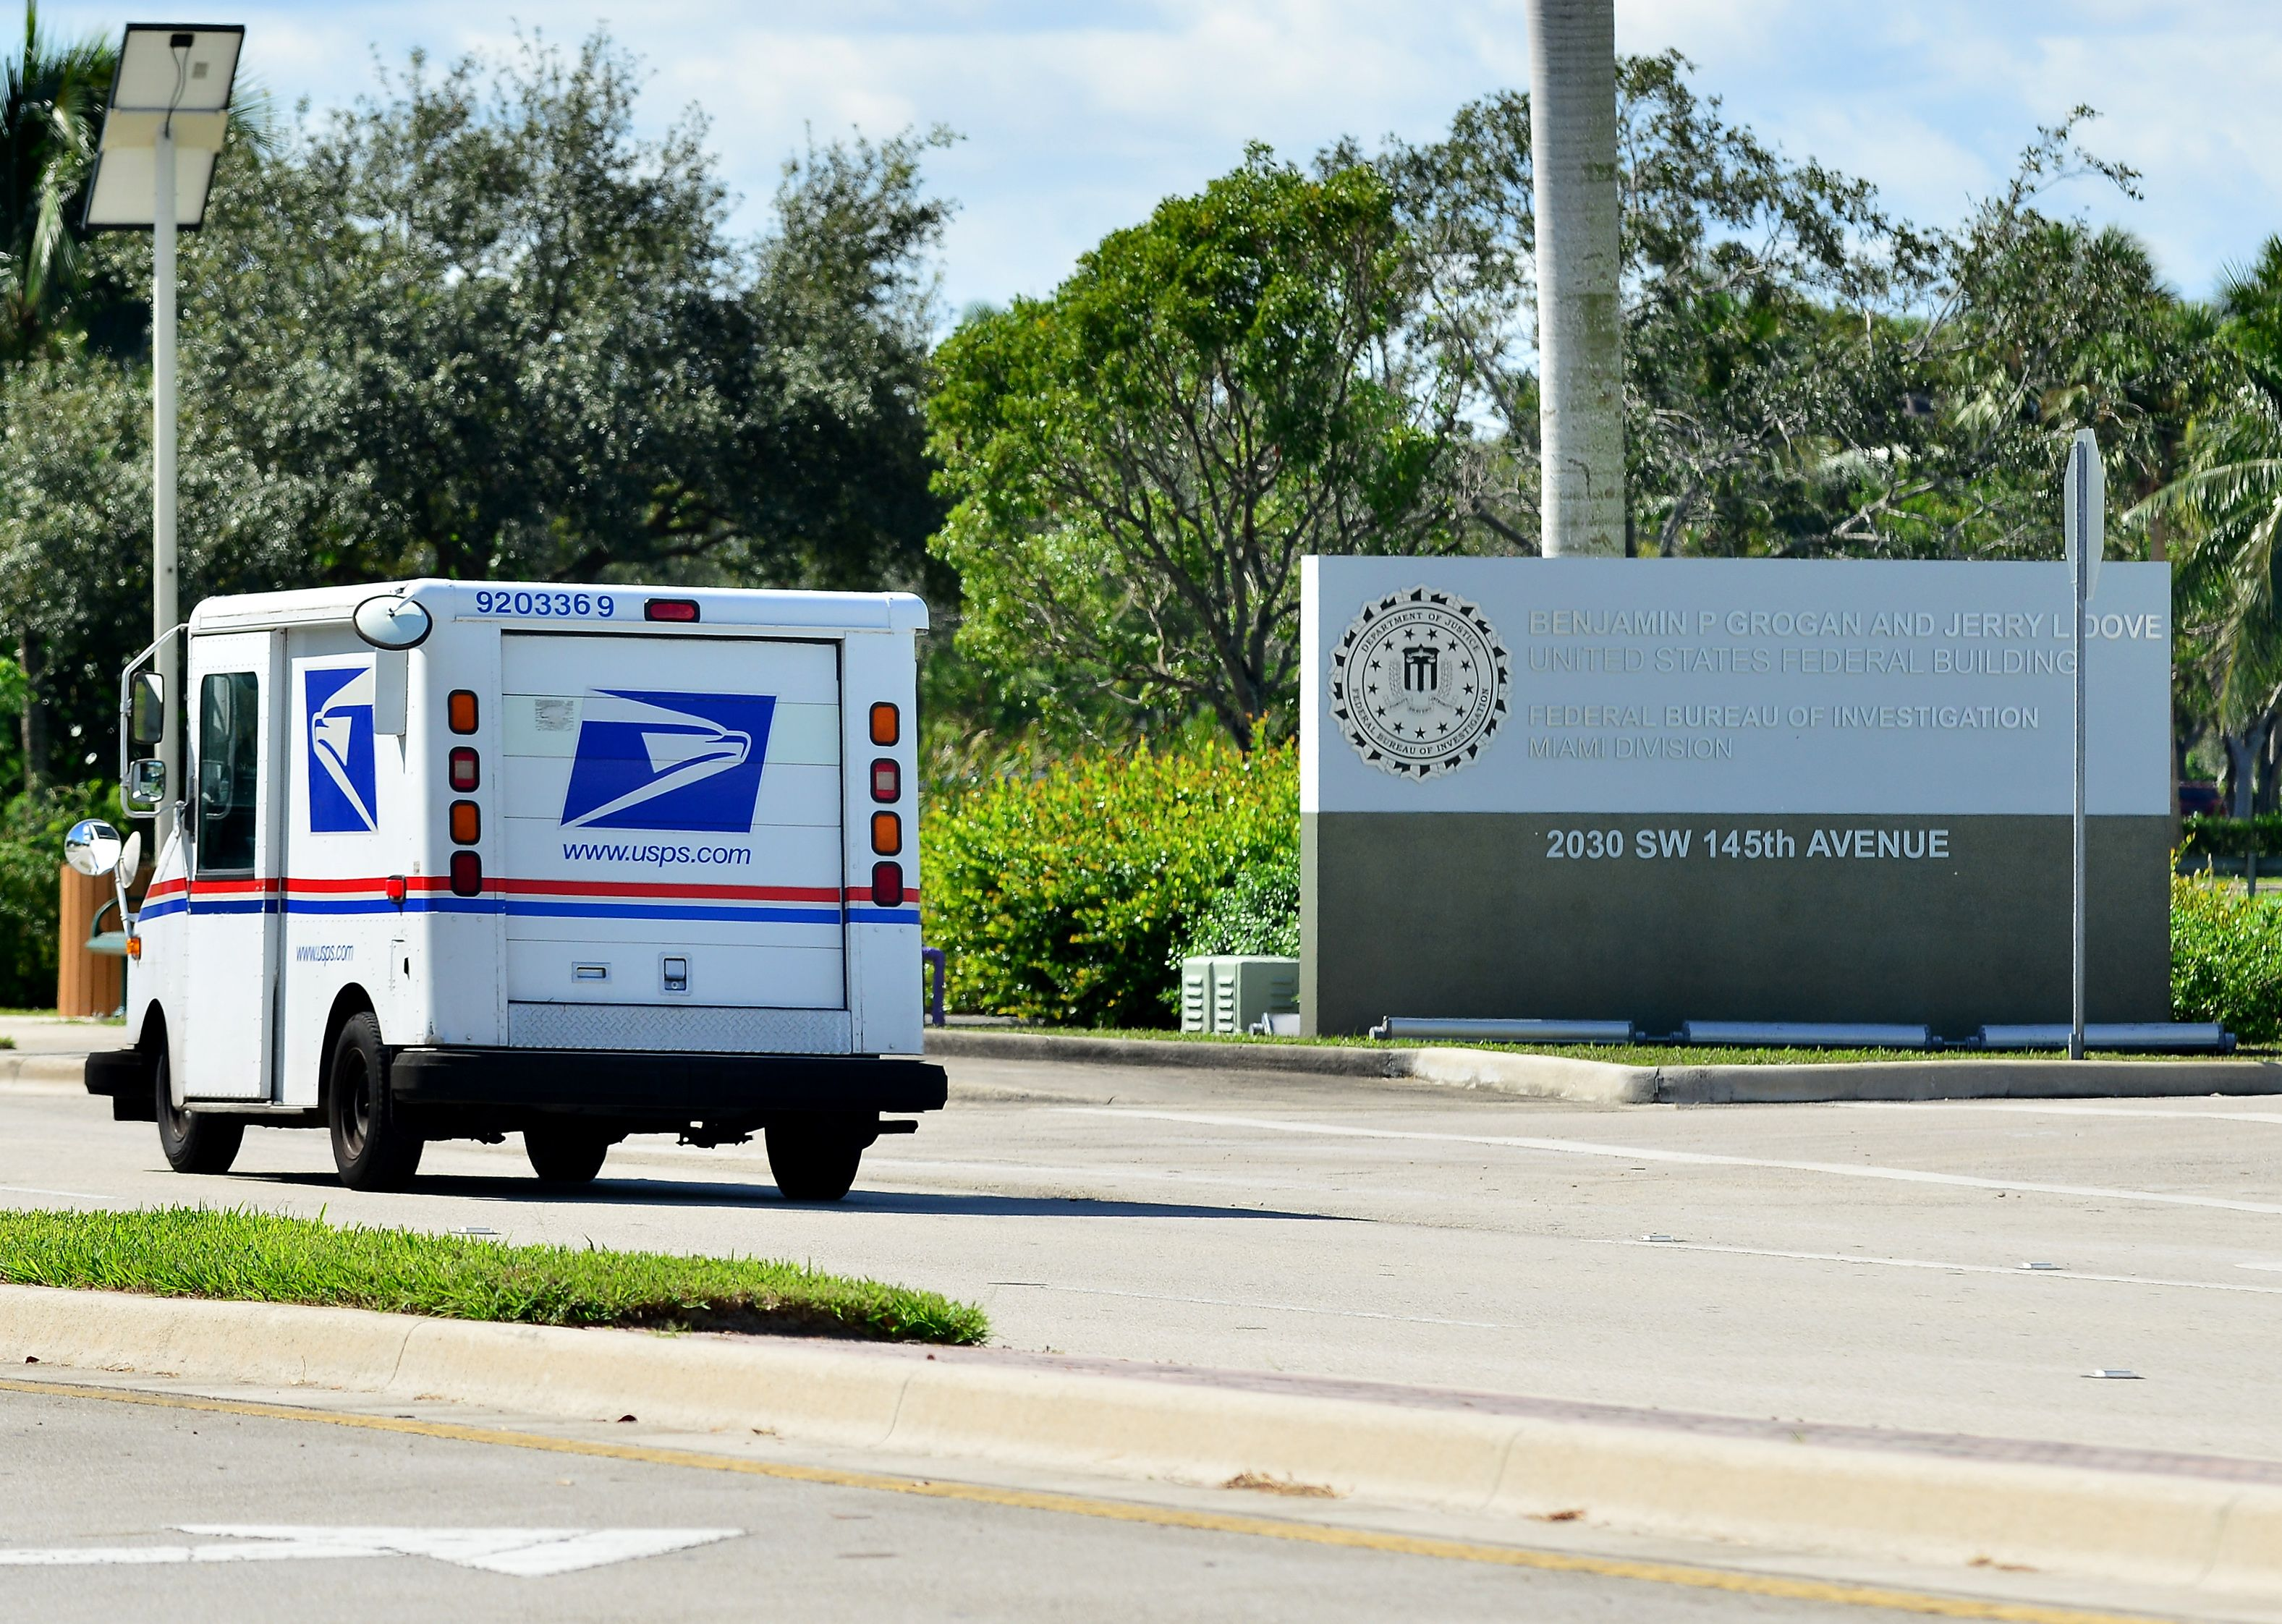 Things You Didn't Know About The Postal Service - Postal